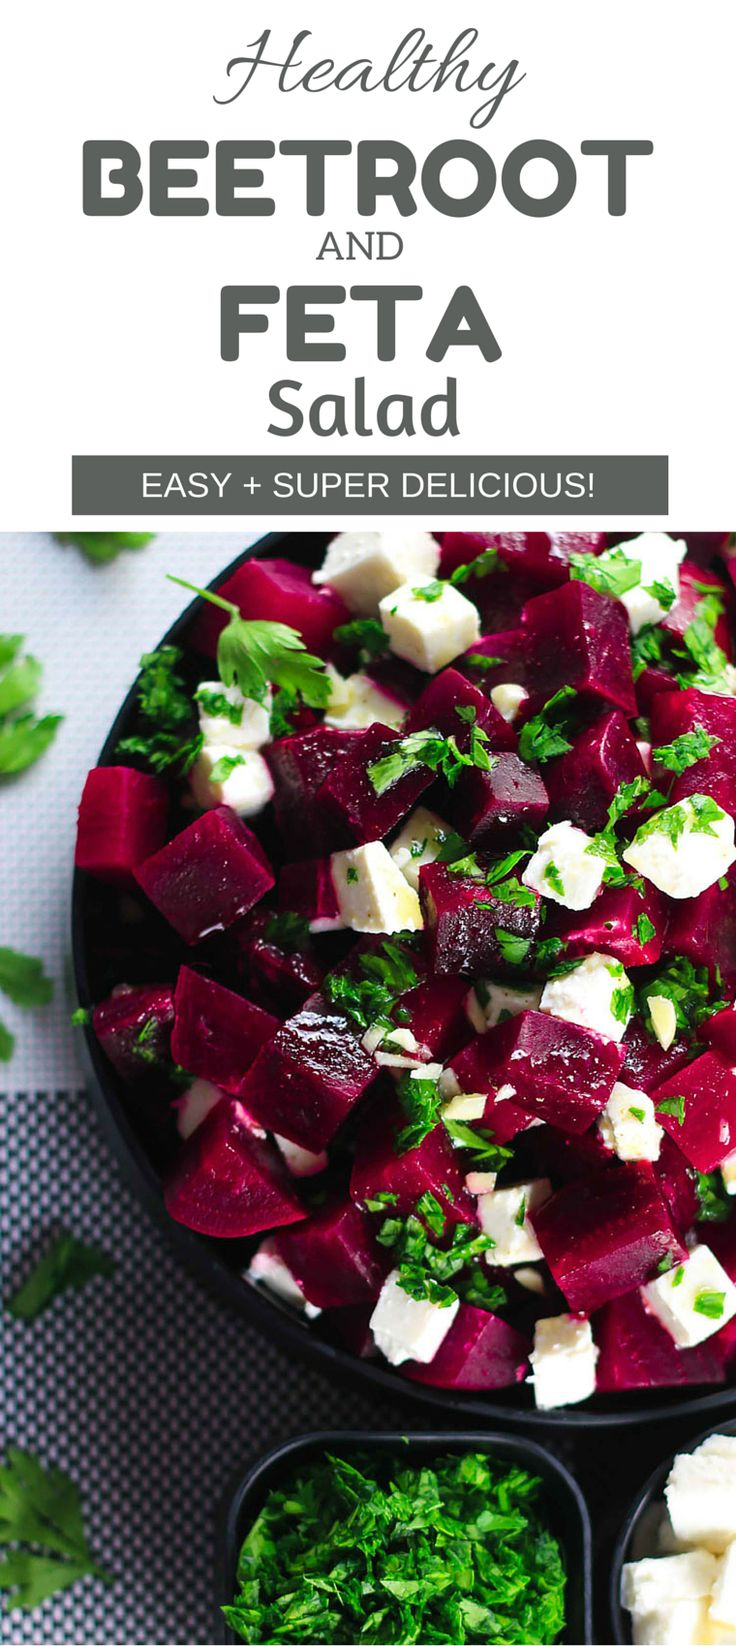 This salad has the perfect balance of sweet and salty from the beetroot and feta cheese - SO good! Super healthy and tastes even better! | ScrambledChefs.com